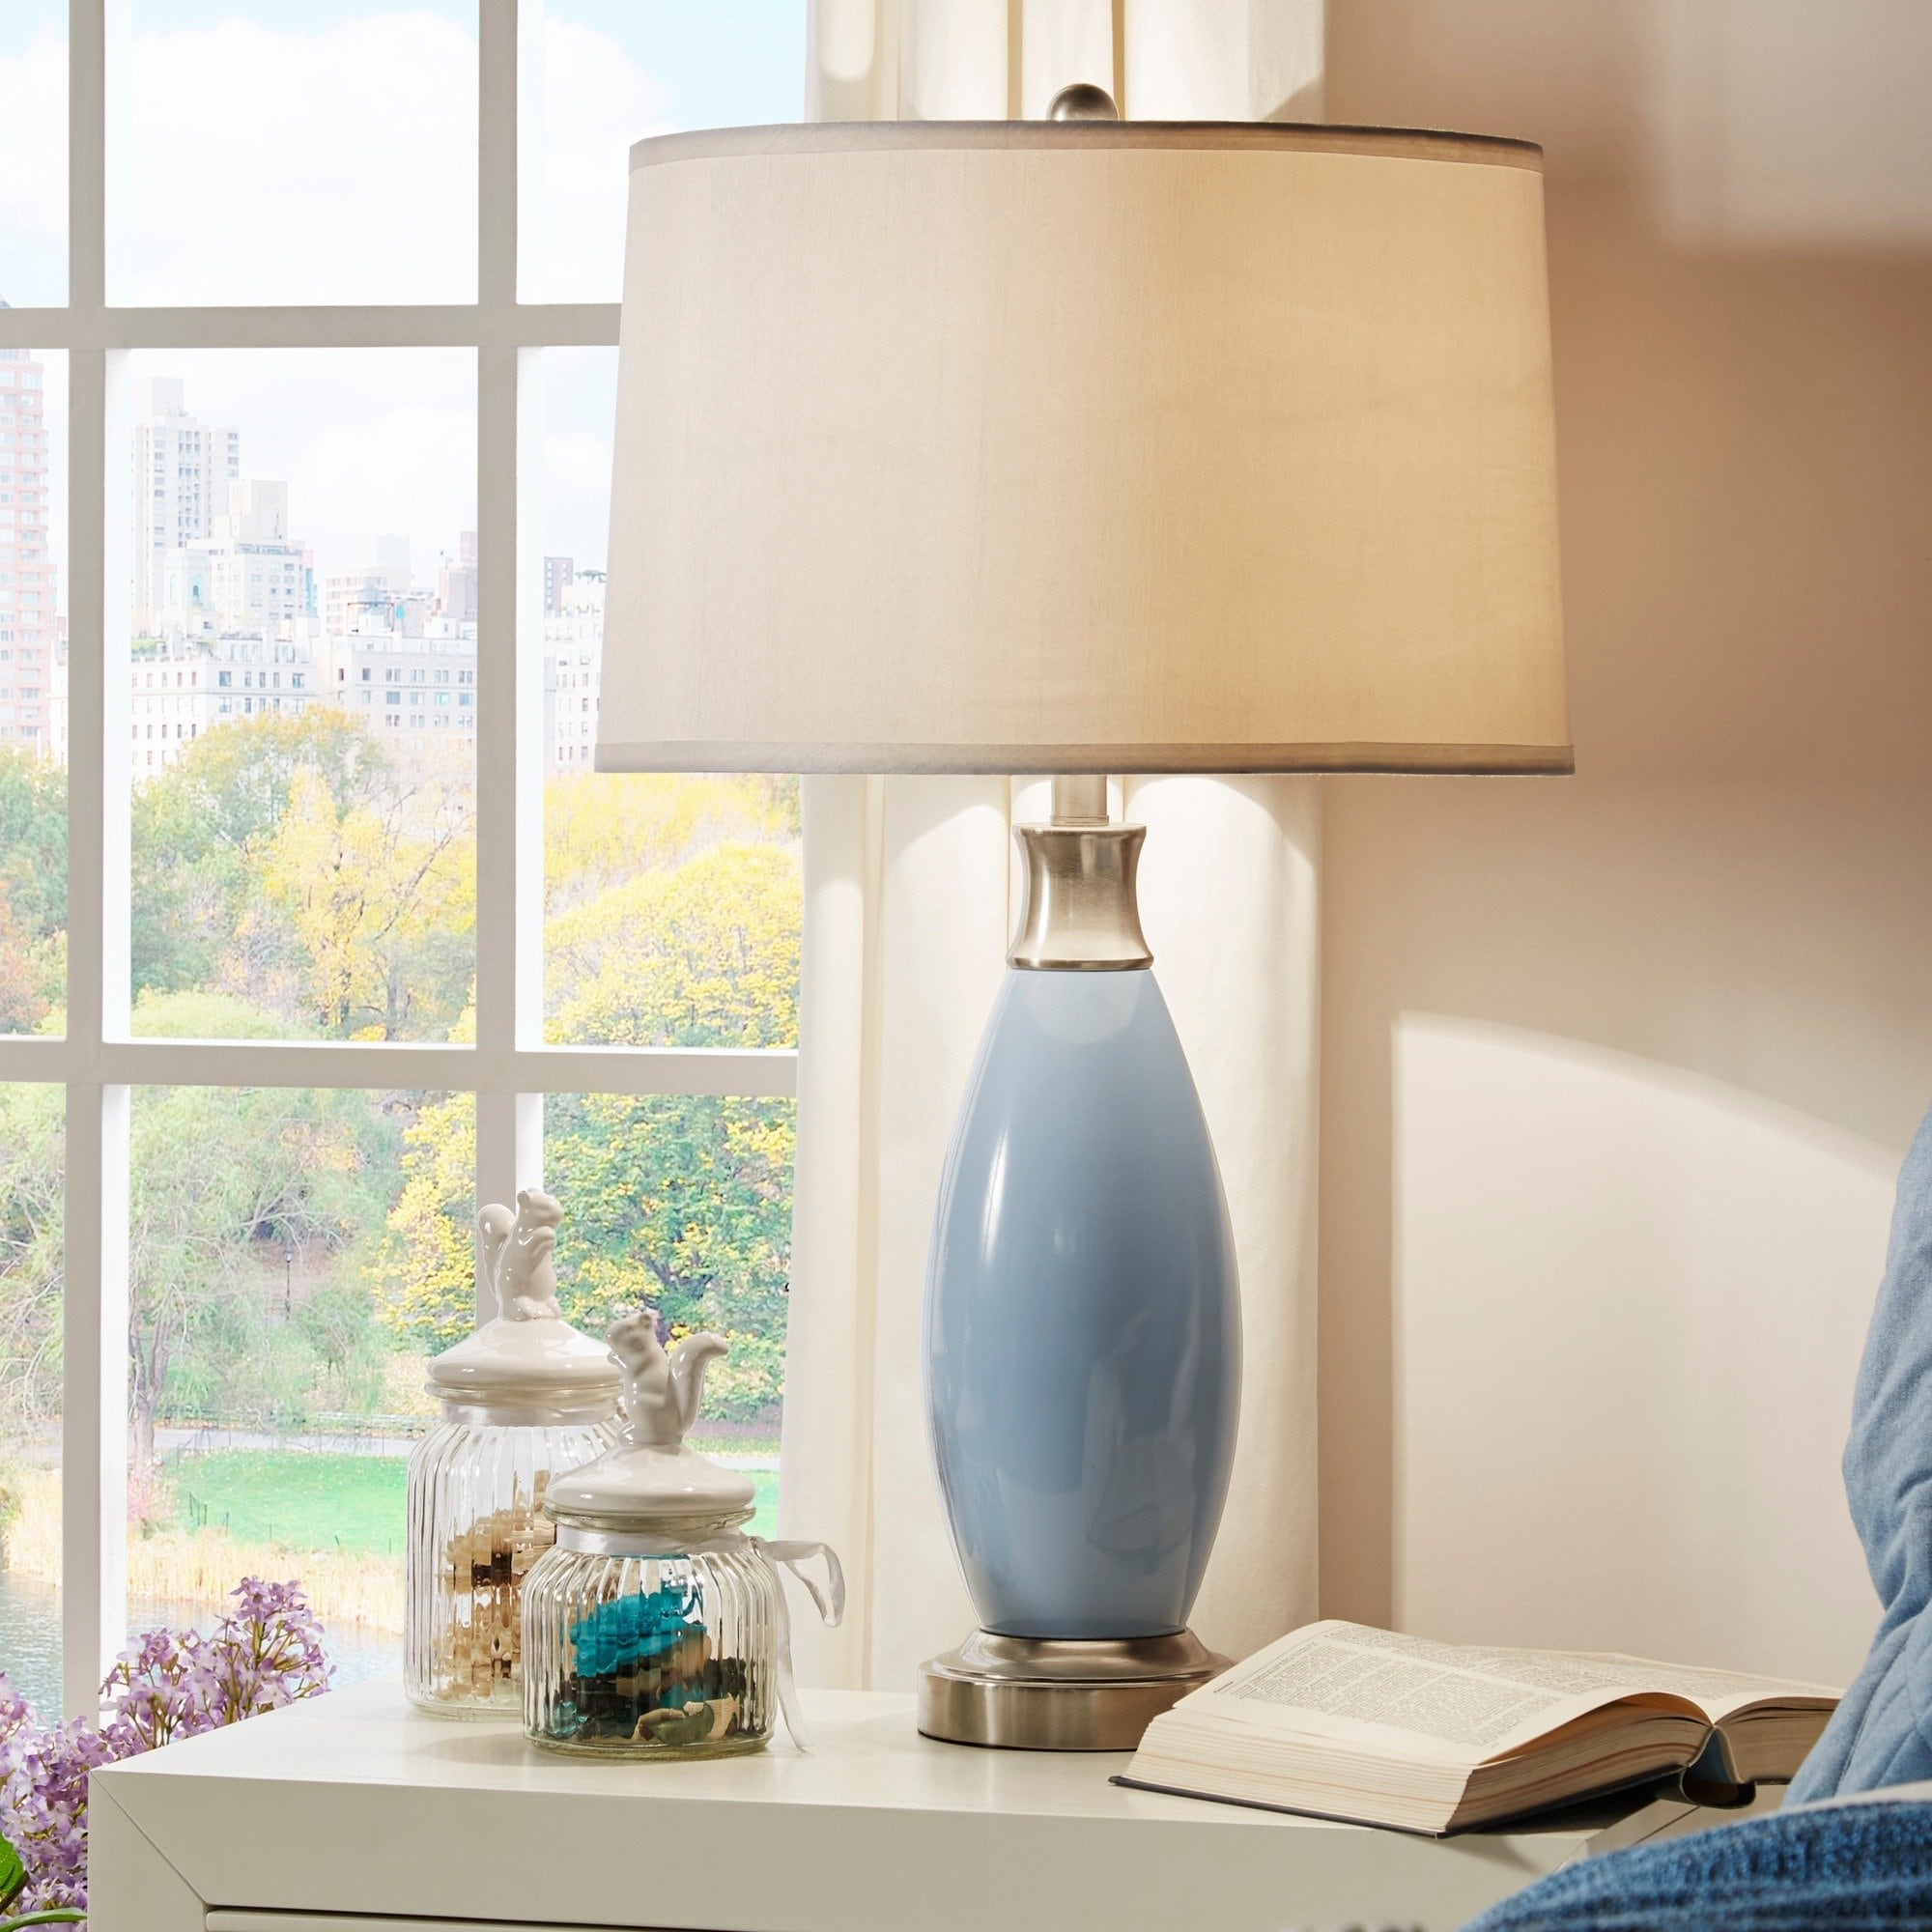 ajax blue metal light accent table lamp inspire classic free shipping today clear acrylic chairs solid marble side ikea narrow end large round linen tablecloths chest for living